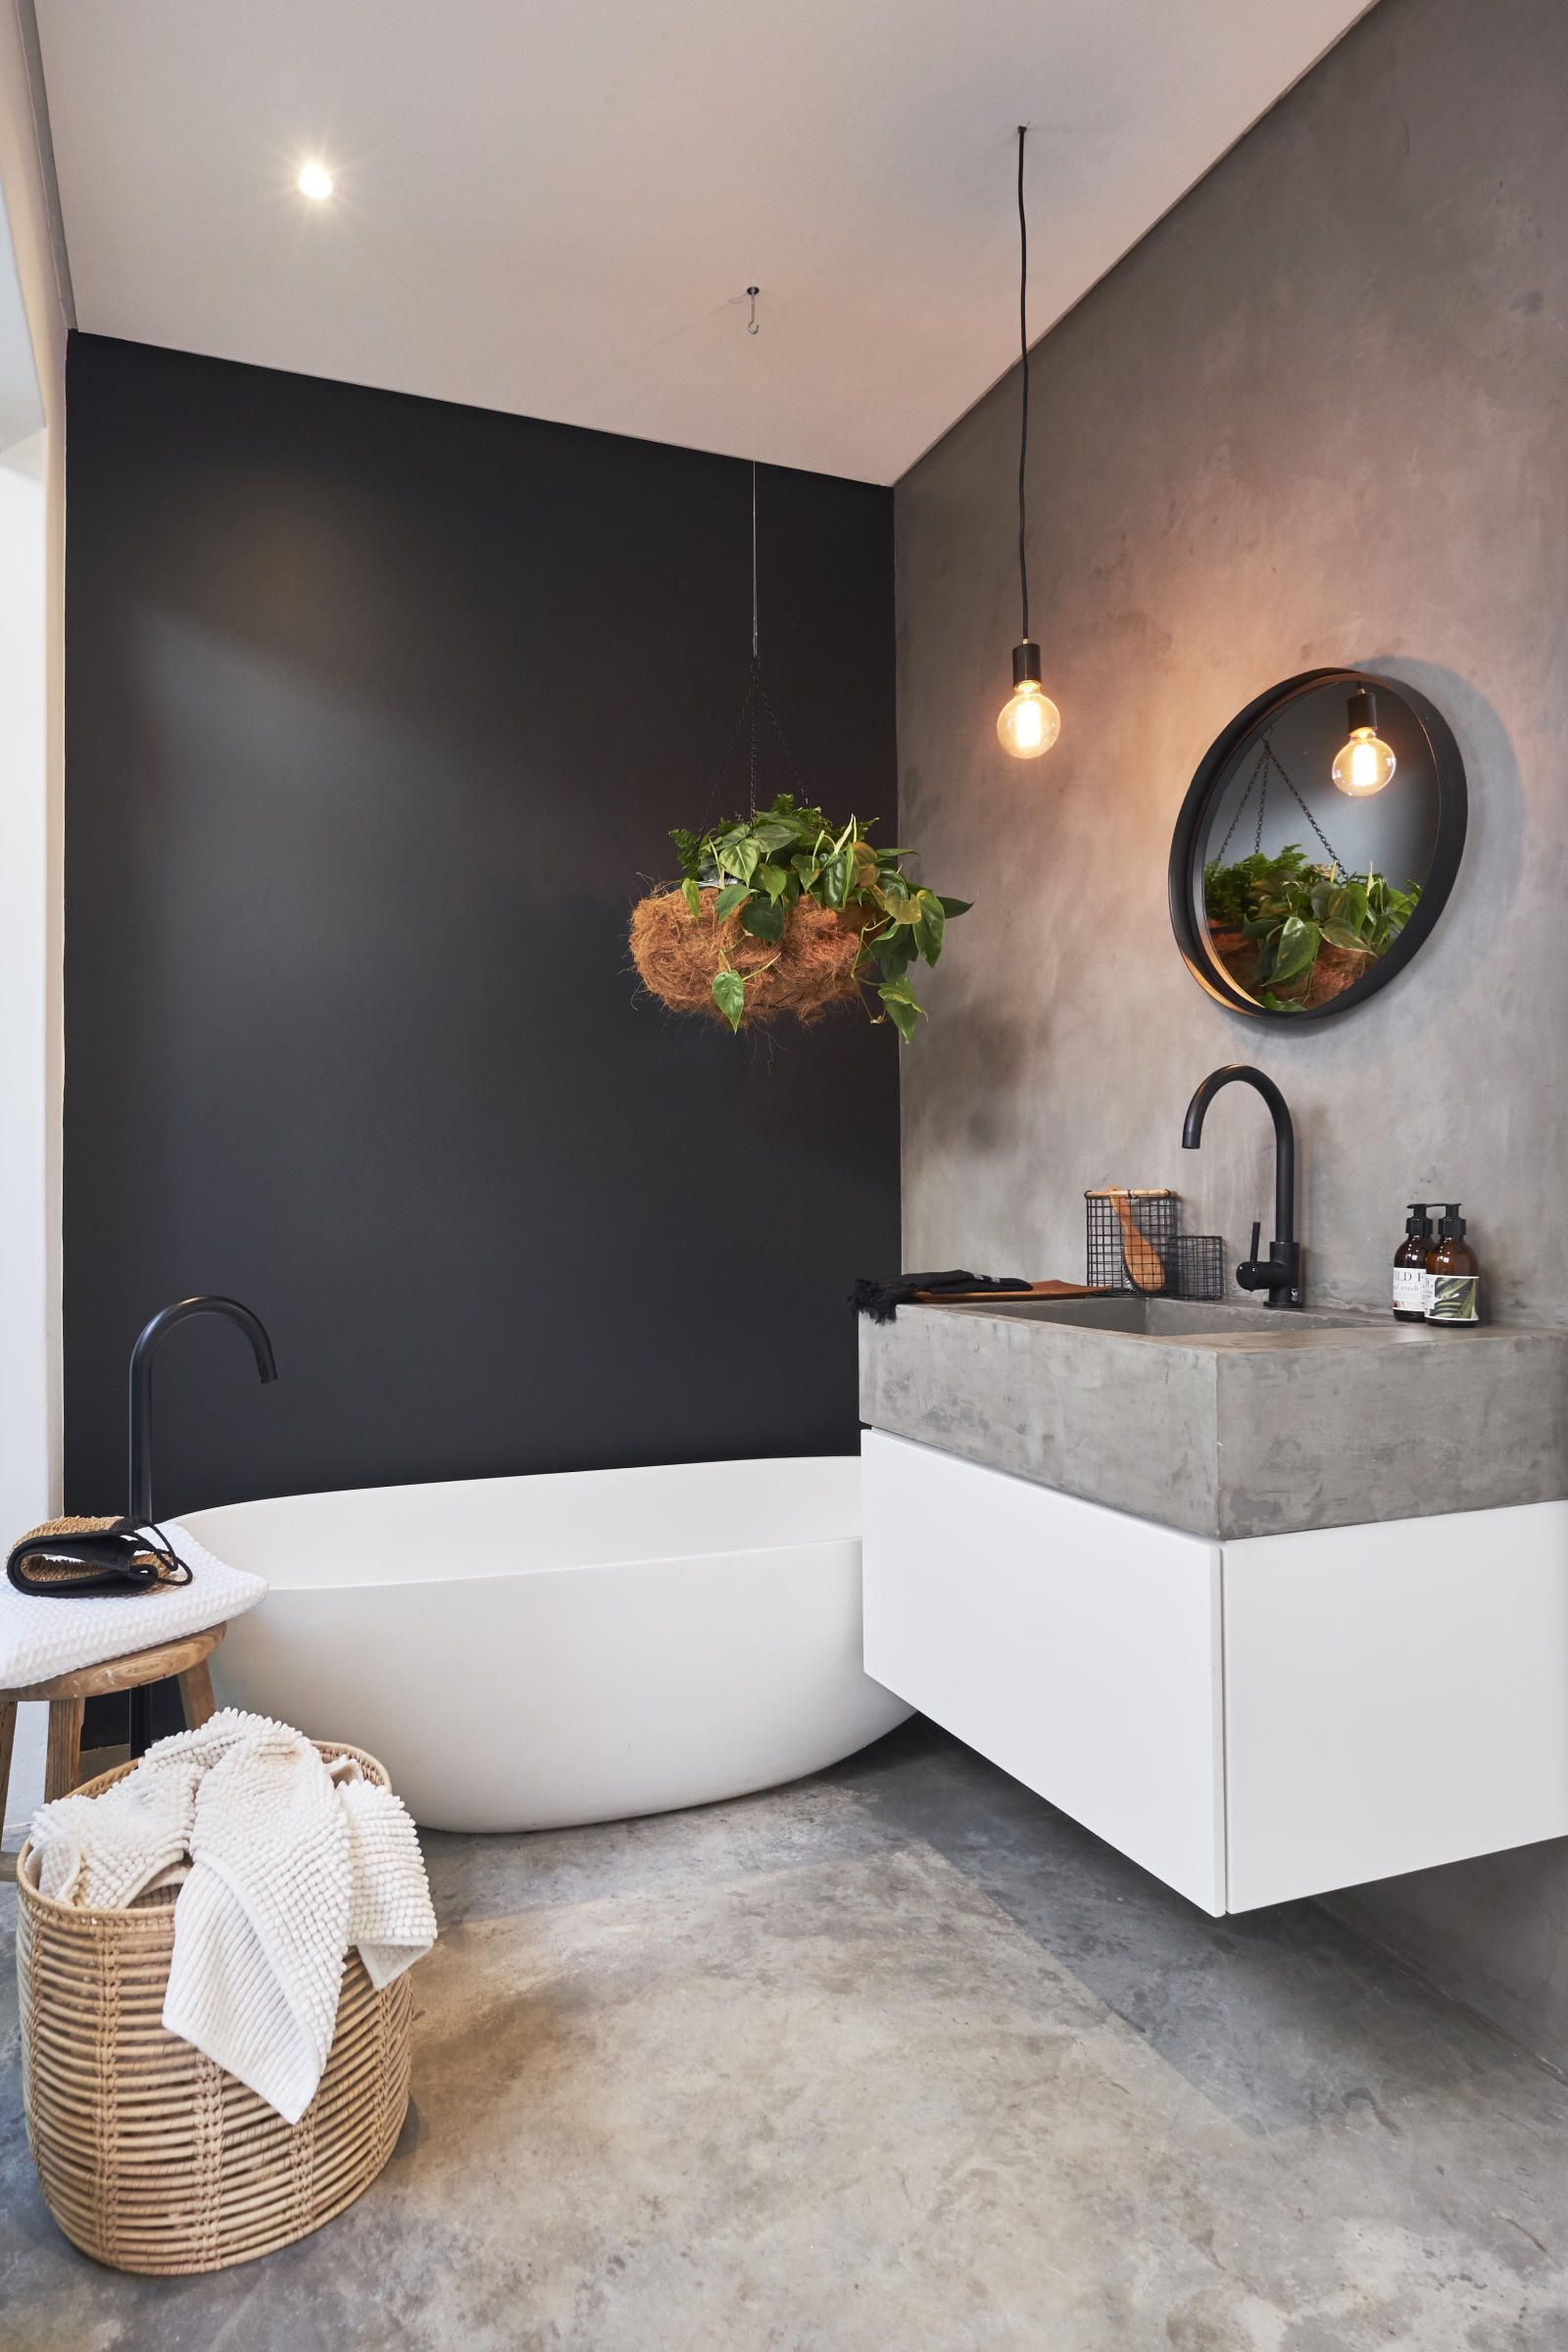 Meir Black Bath Filler Round Kitchen Mixer Cemcote Dark Grey Normal Screed Floors Sealed With Ce Bathroom Interior Design Bathroom Interior Tiny Bathrooms